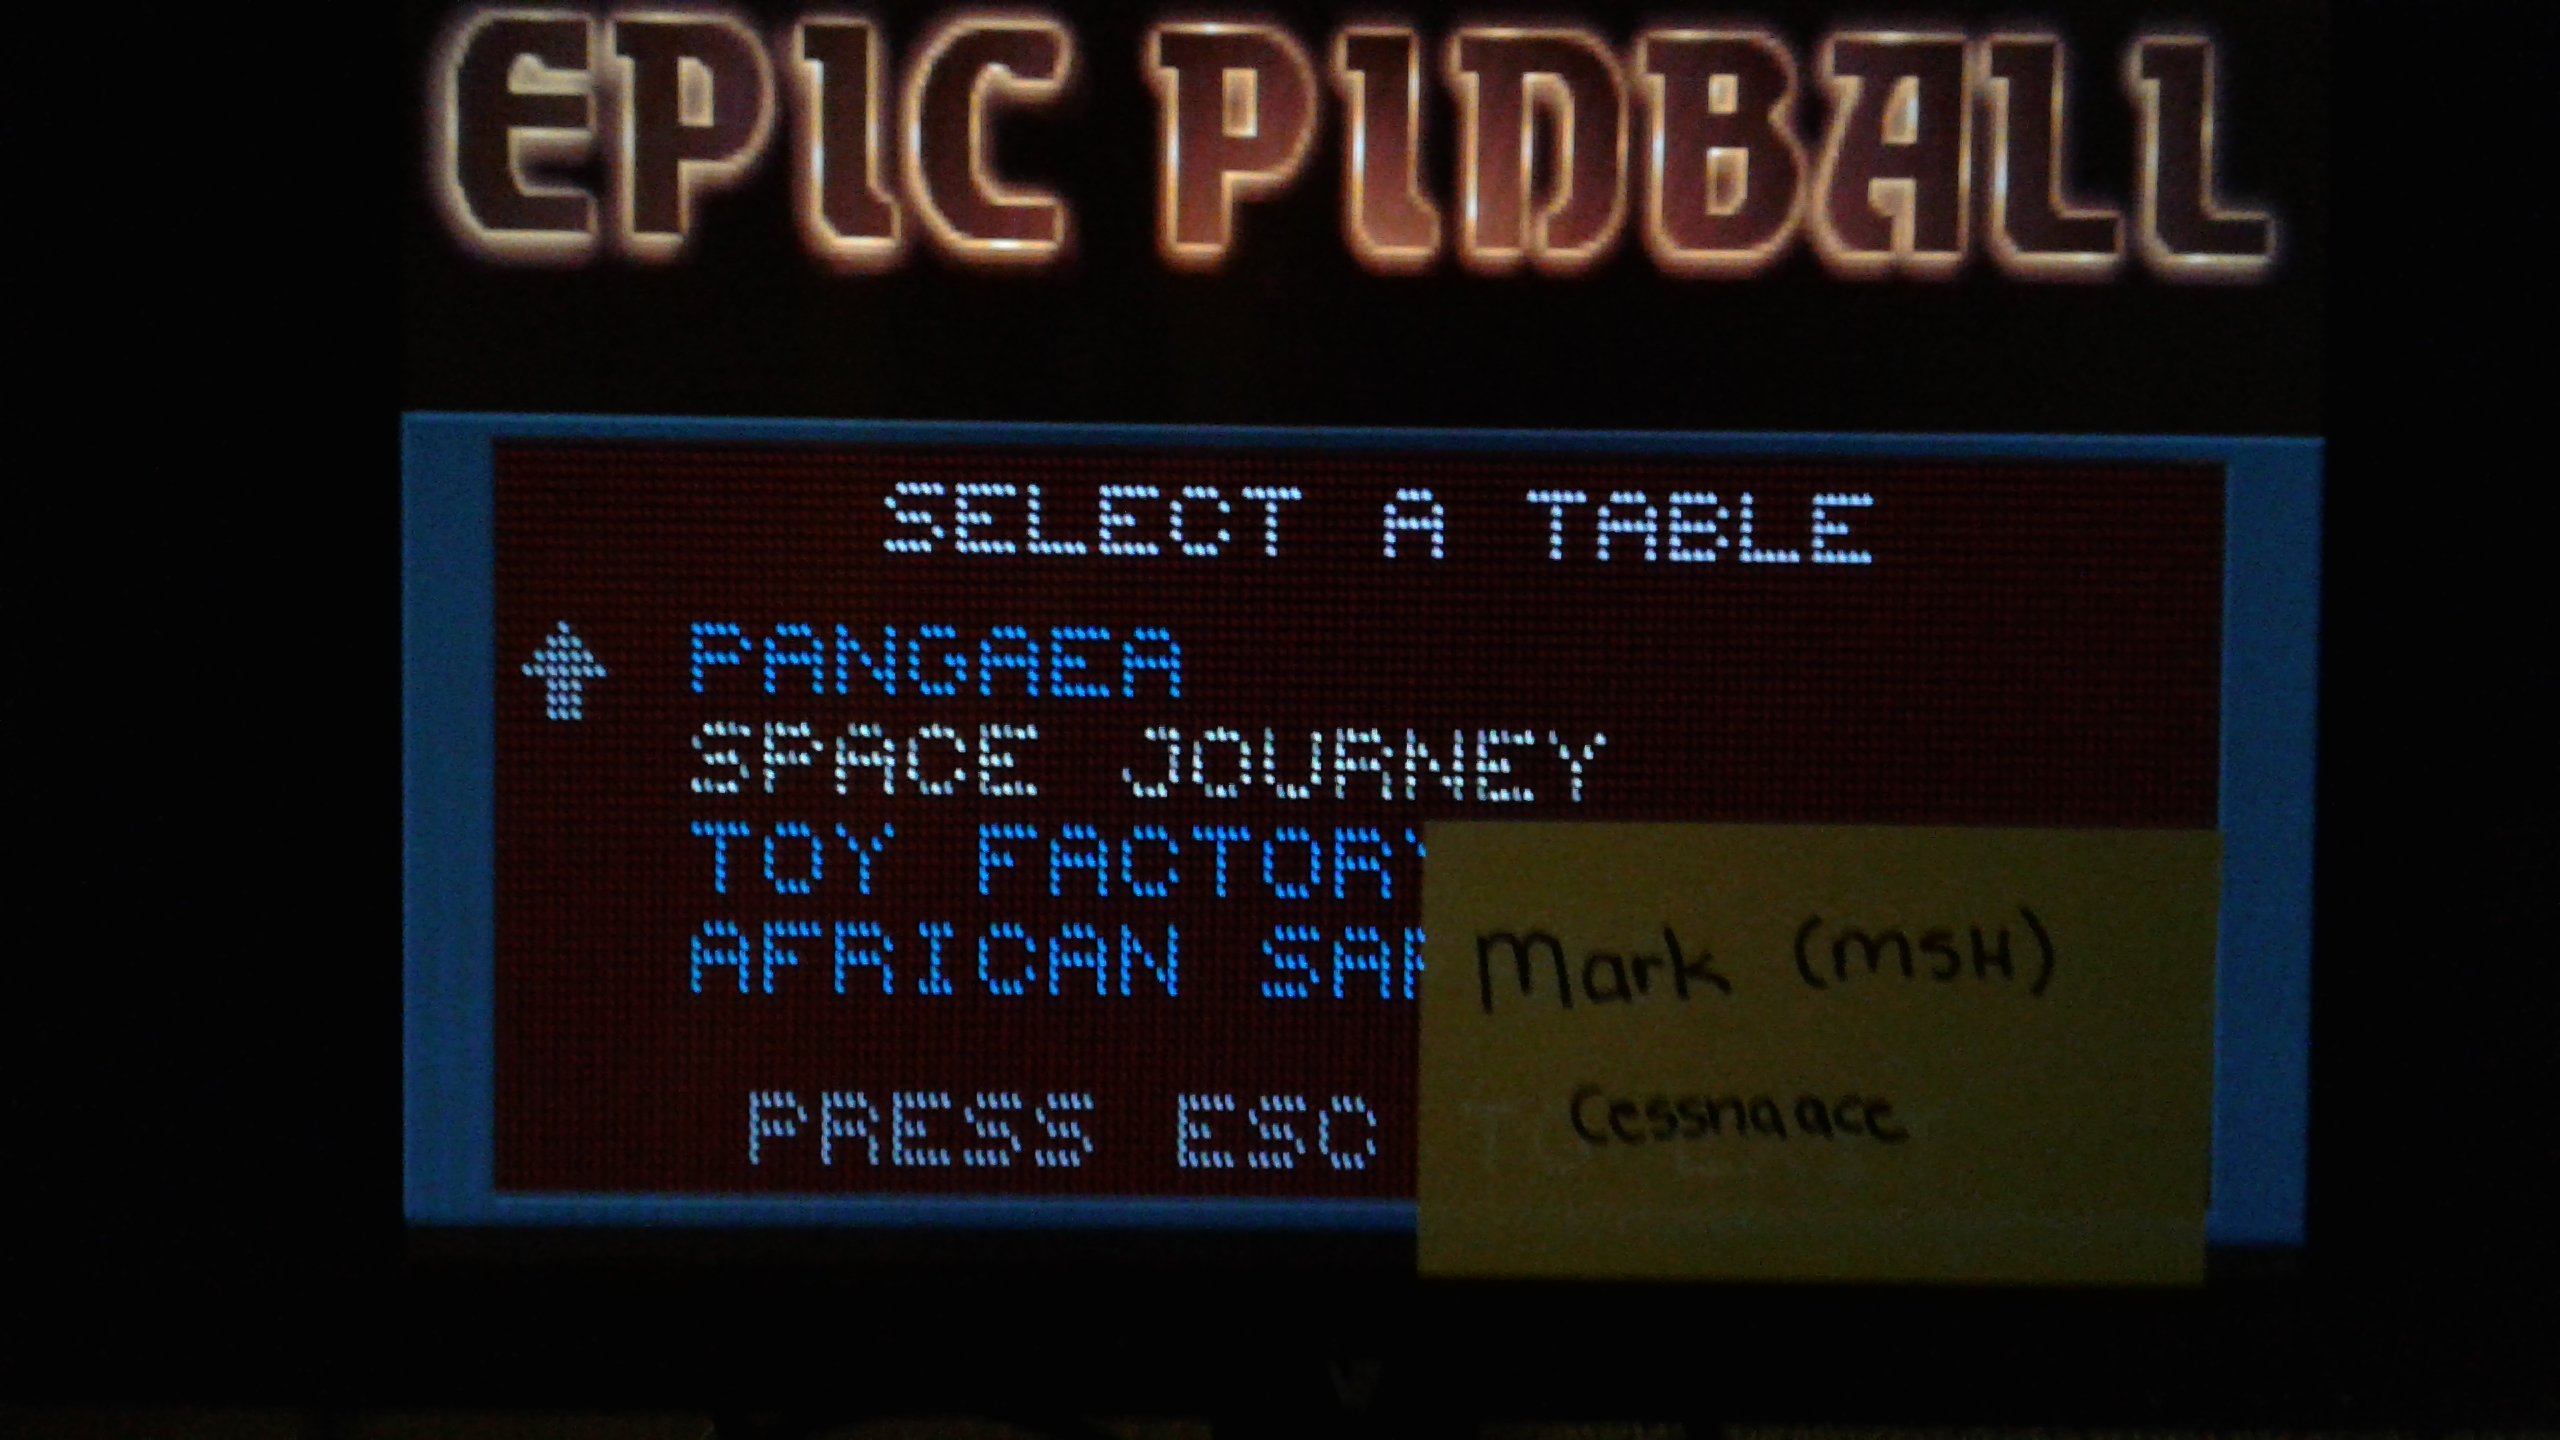 Mark: Epic Pinball: Space Journey (PC Emulated / DOSBox) 4,460,000 points on 2019-05-14 01:31:27